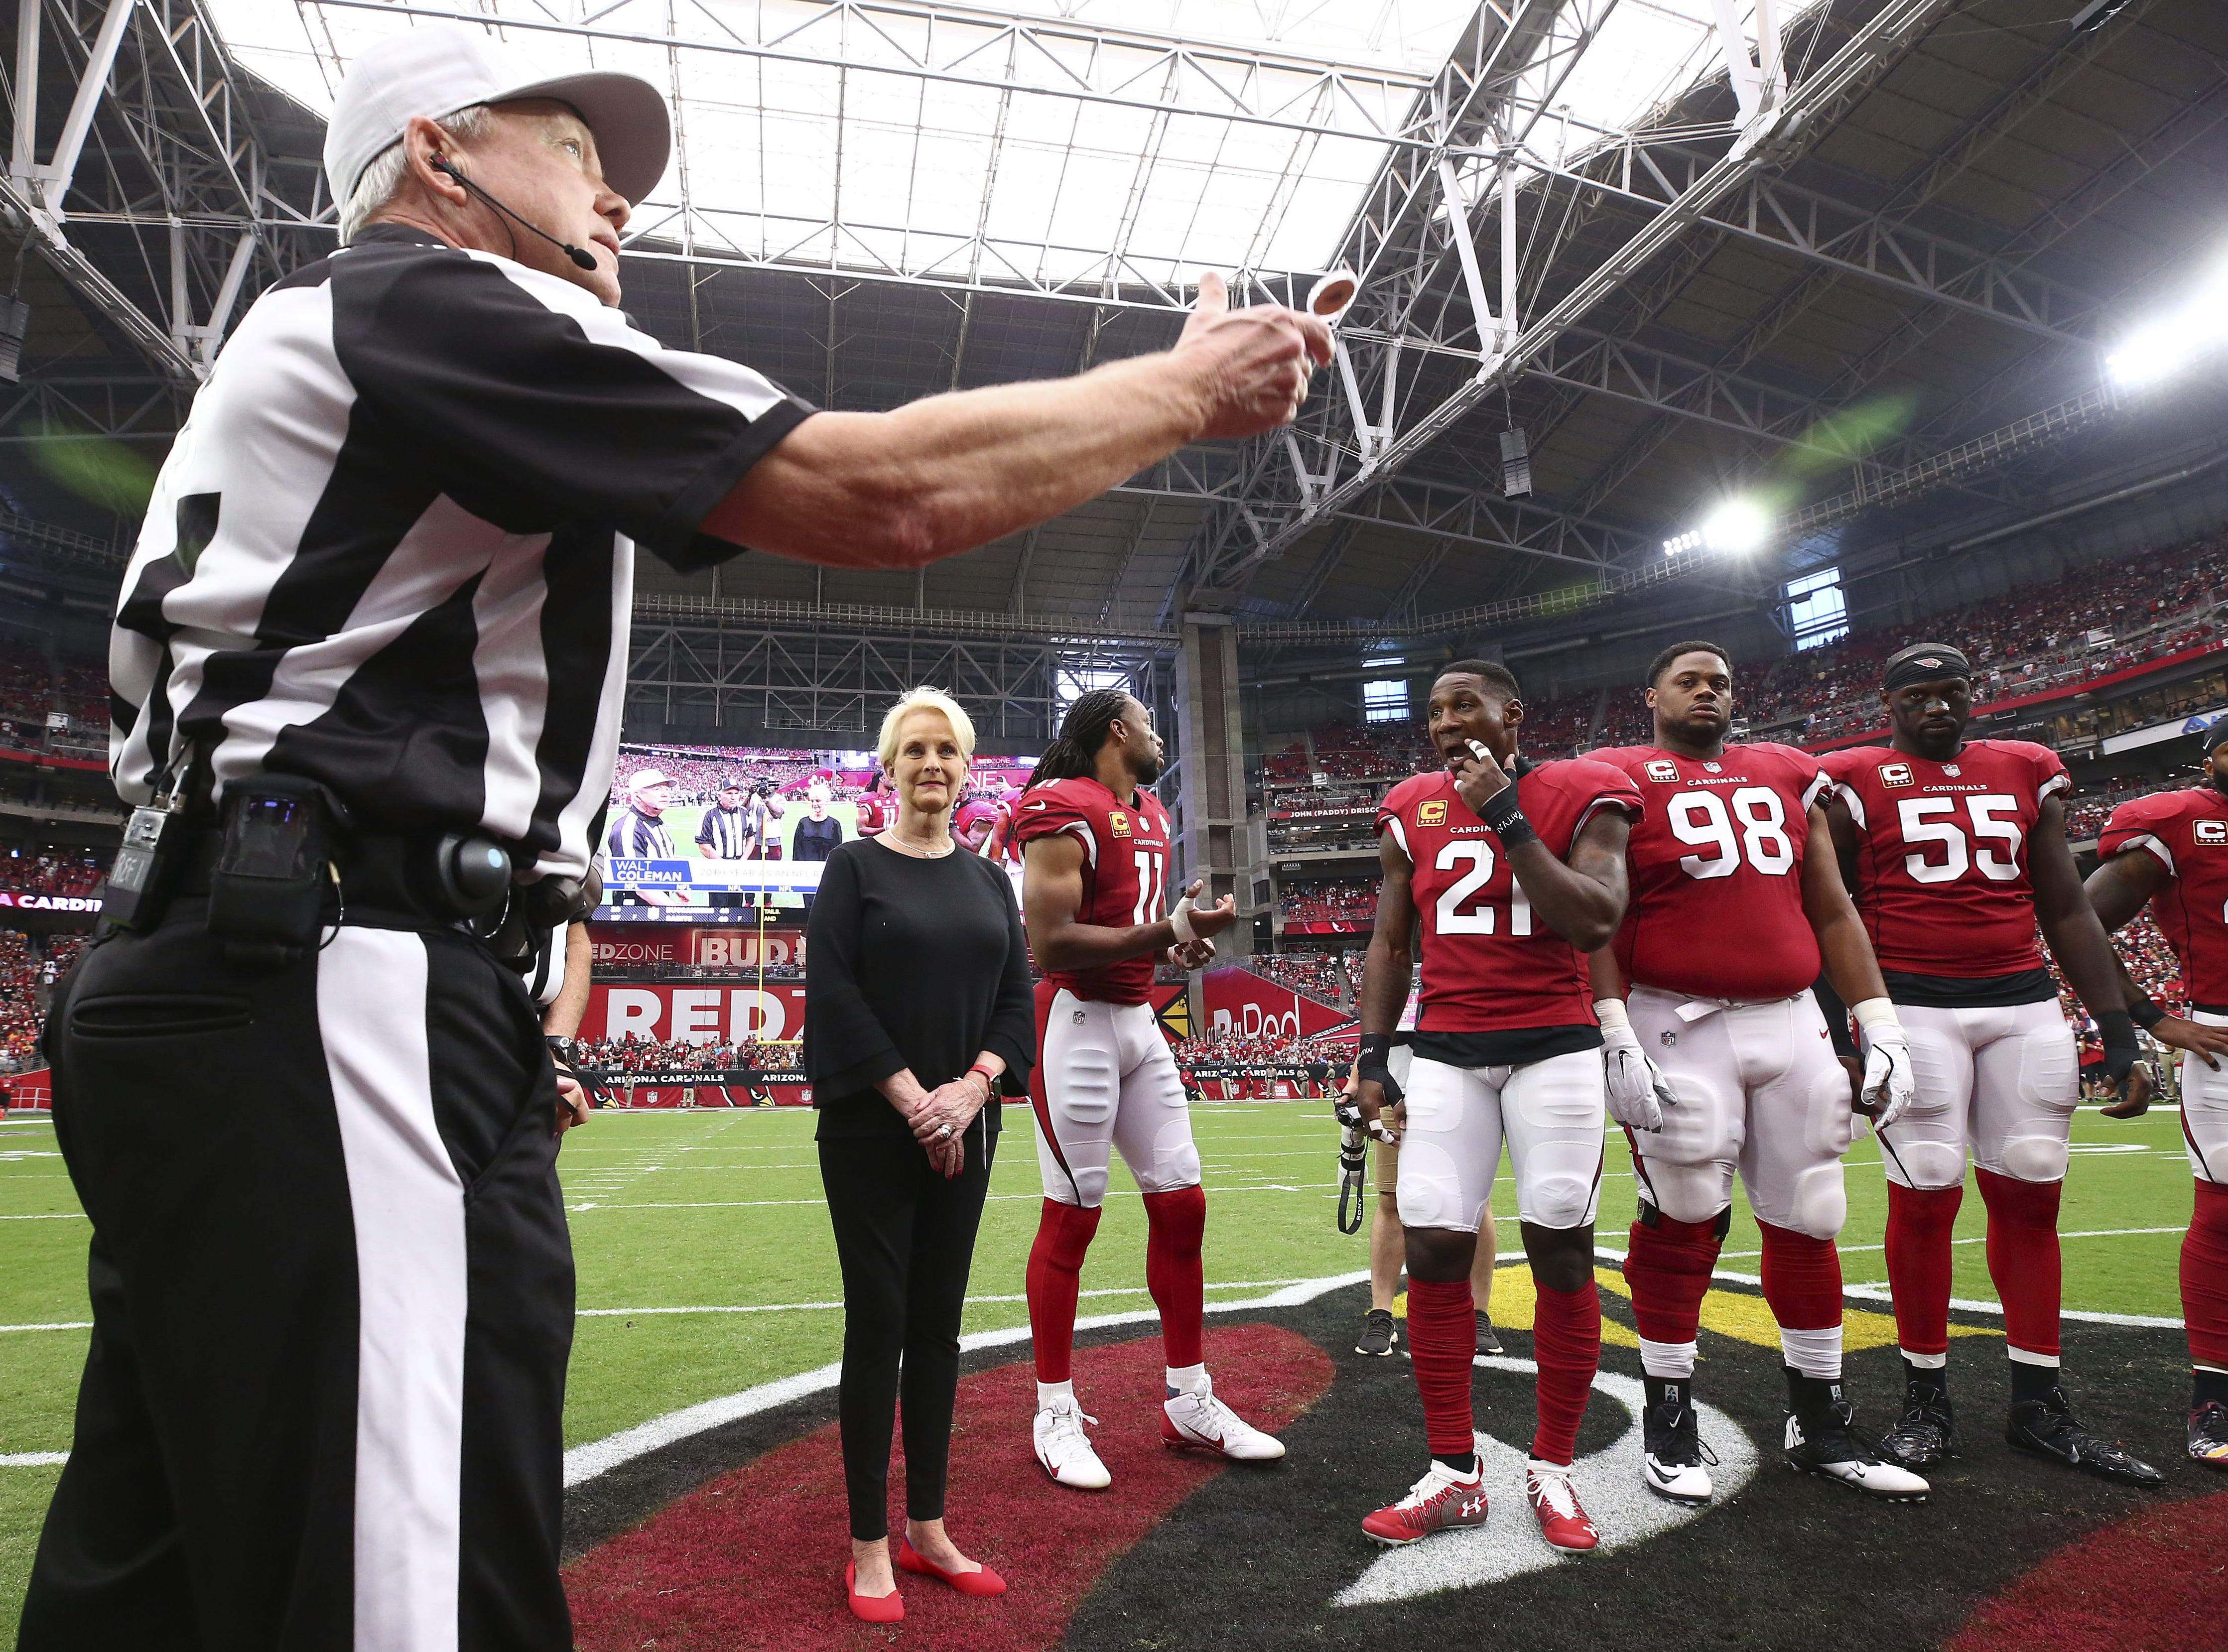 Cindy McCain, wife of the late U.S. Sen. John McCain, R-Ariz., stands with Arizona Cardinals' Larry Fitzgerald (11), Patrick Peterson (21), Corey Peters (98) and Chandler Jones (55) as an honorary team captain as referee Walt Coleman tosses the coin prior to an NFL football game against the Washington Redskins , Sunday, Sept. 9, 2018, in Glendale, Ariz. Rob Schumacher/The Republic